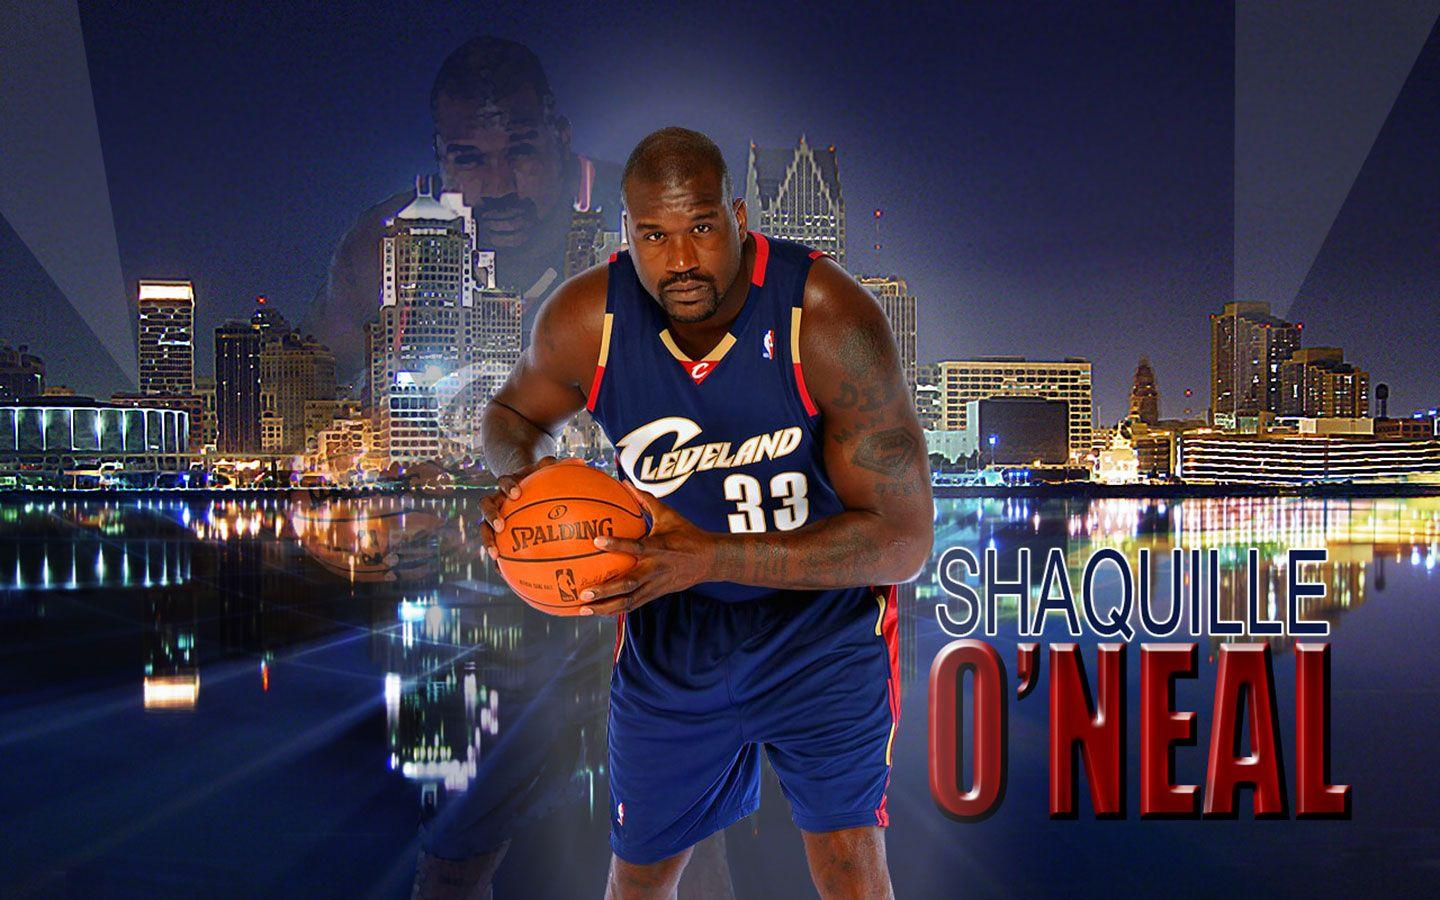 Shaquille O'Neal Cavaliers Widescreen Wallpapers